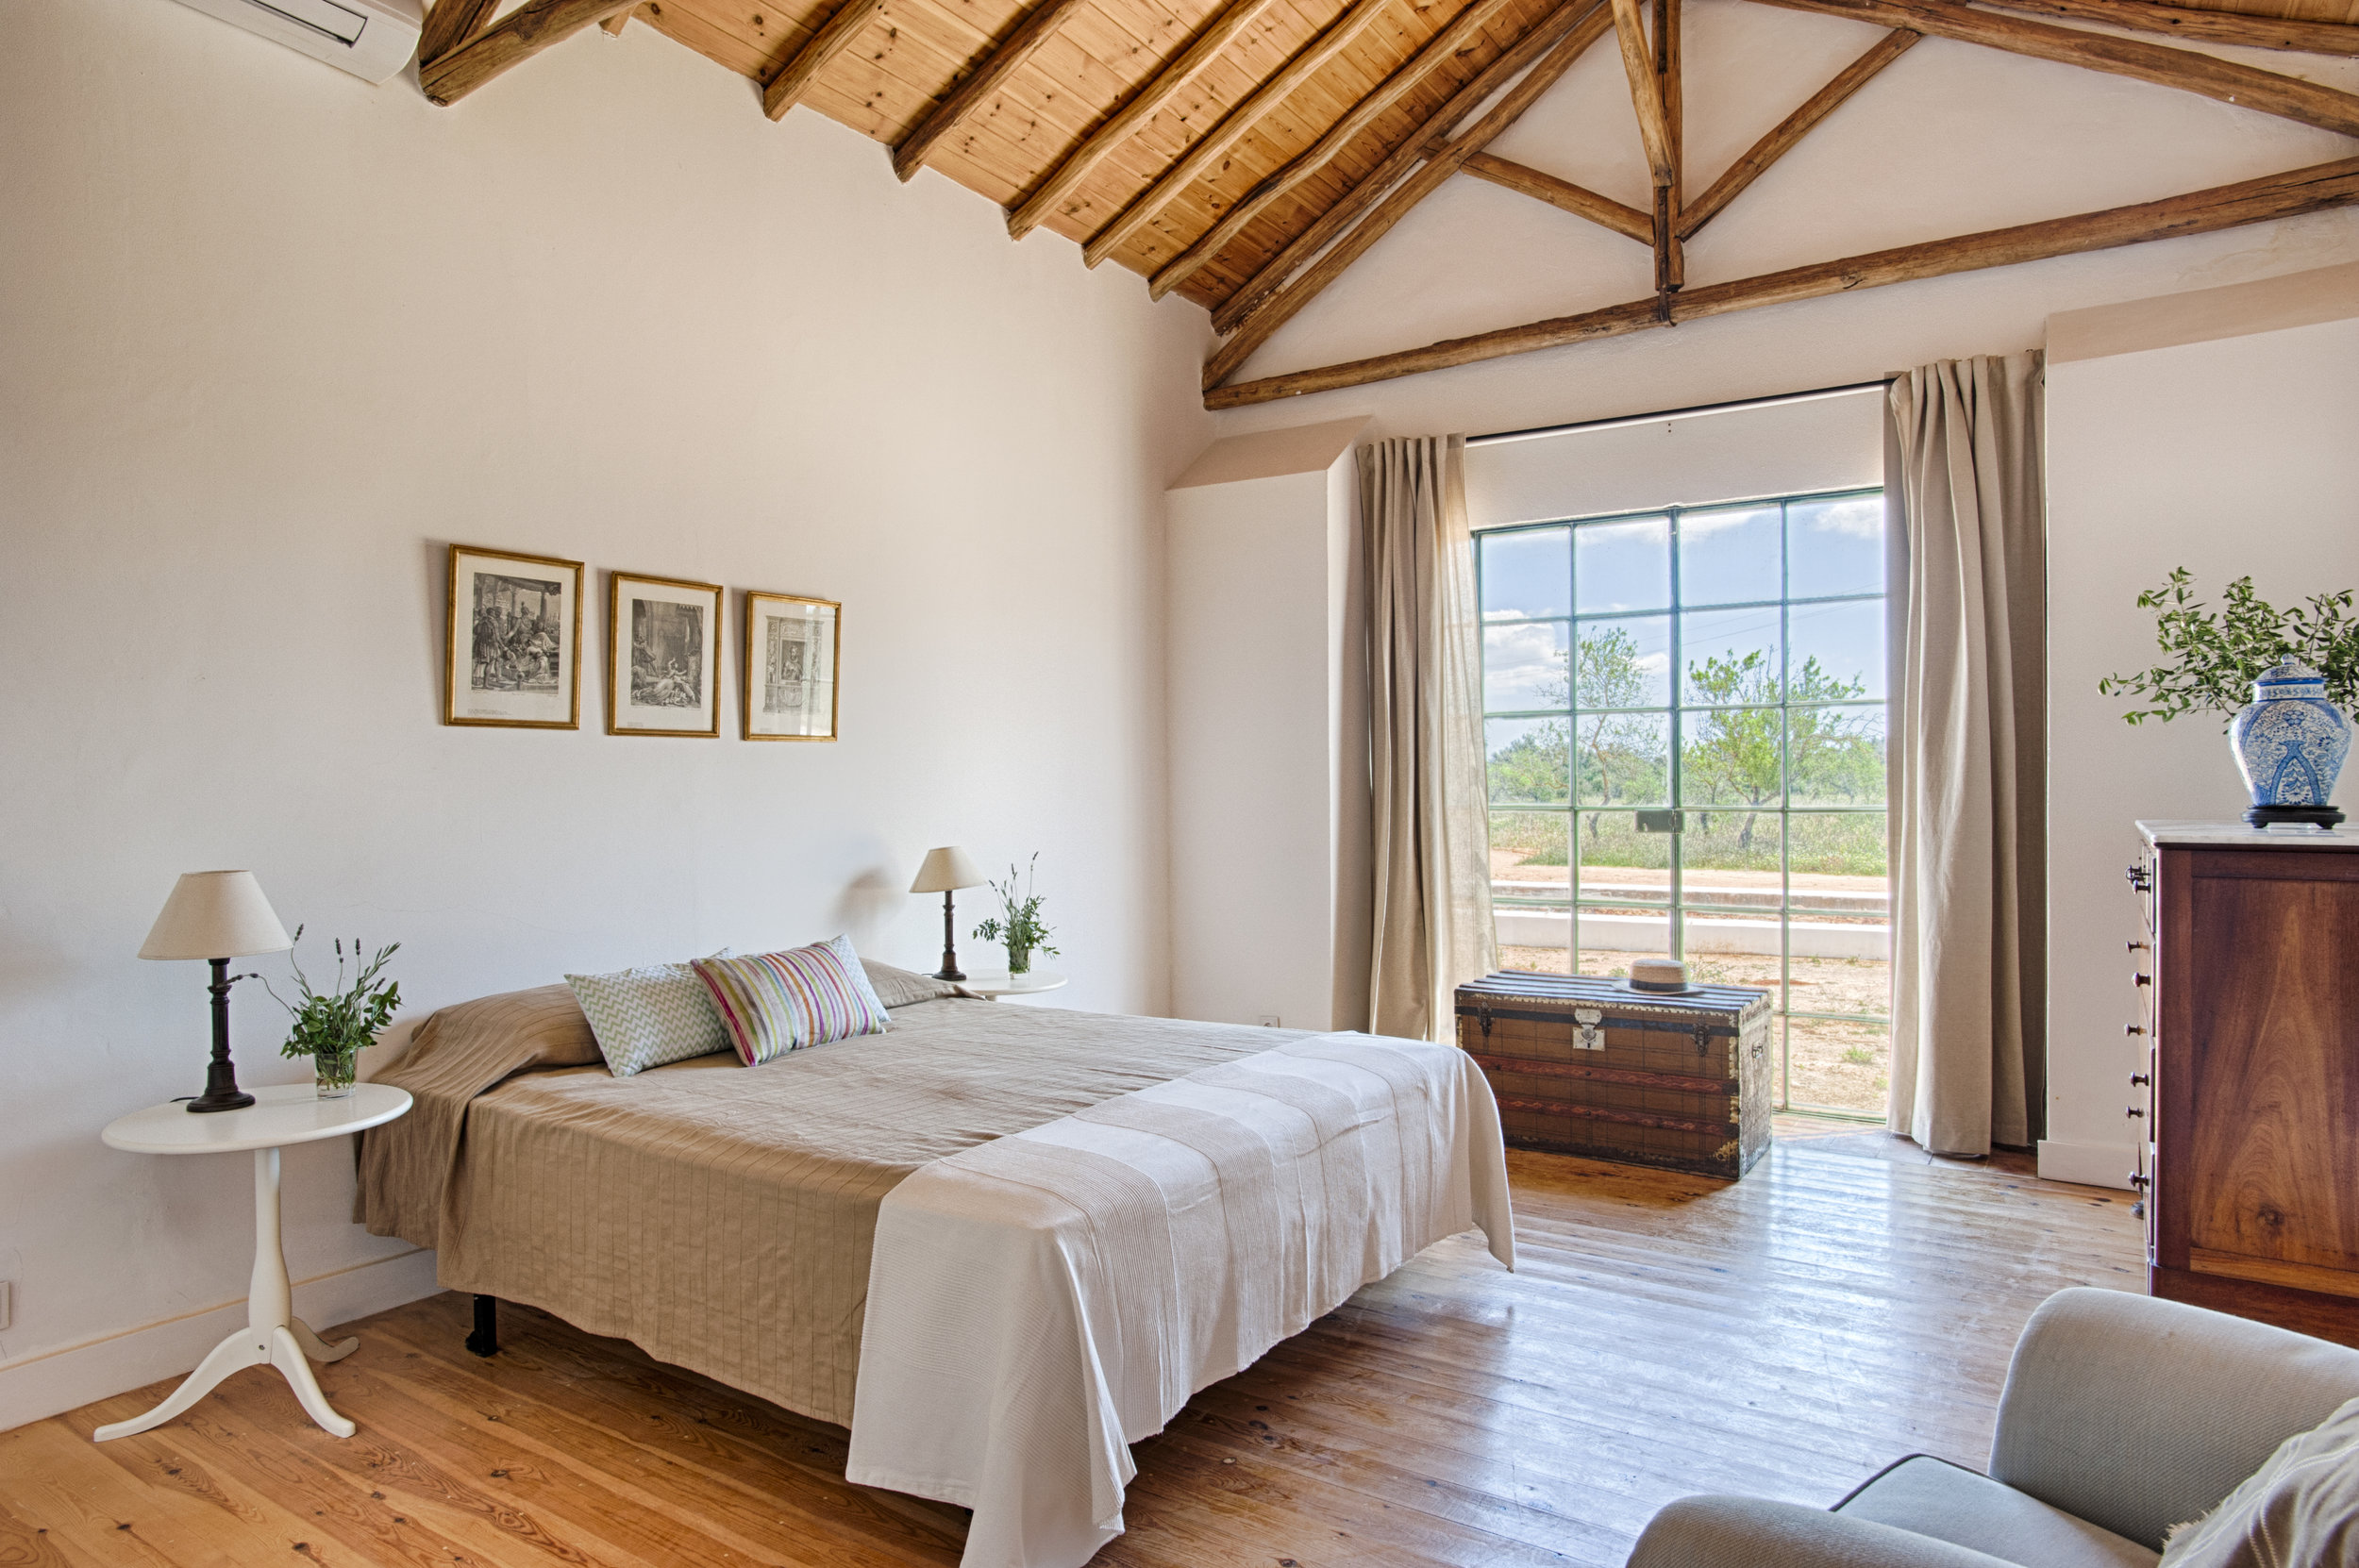 Bedroom_1_ALGARVE_Yoga_retreat_venue_Experience-retreats.JPG